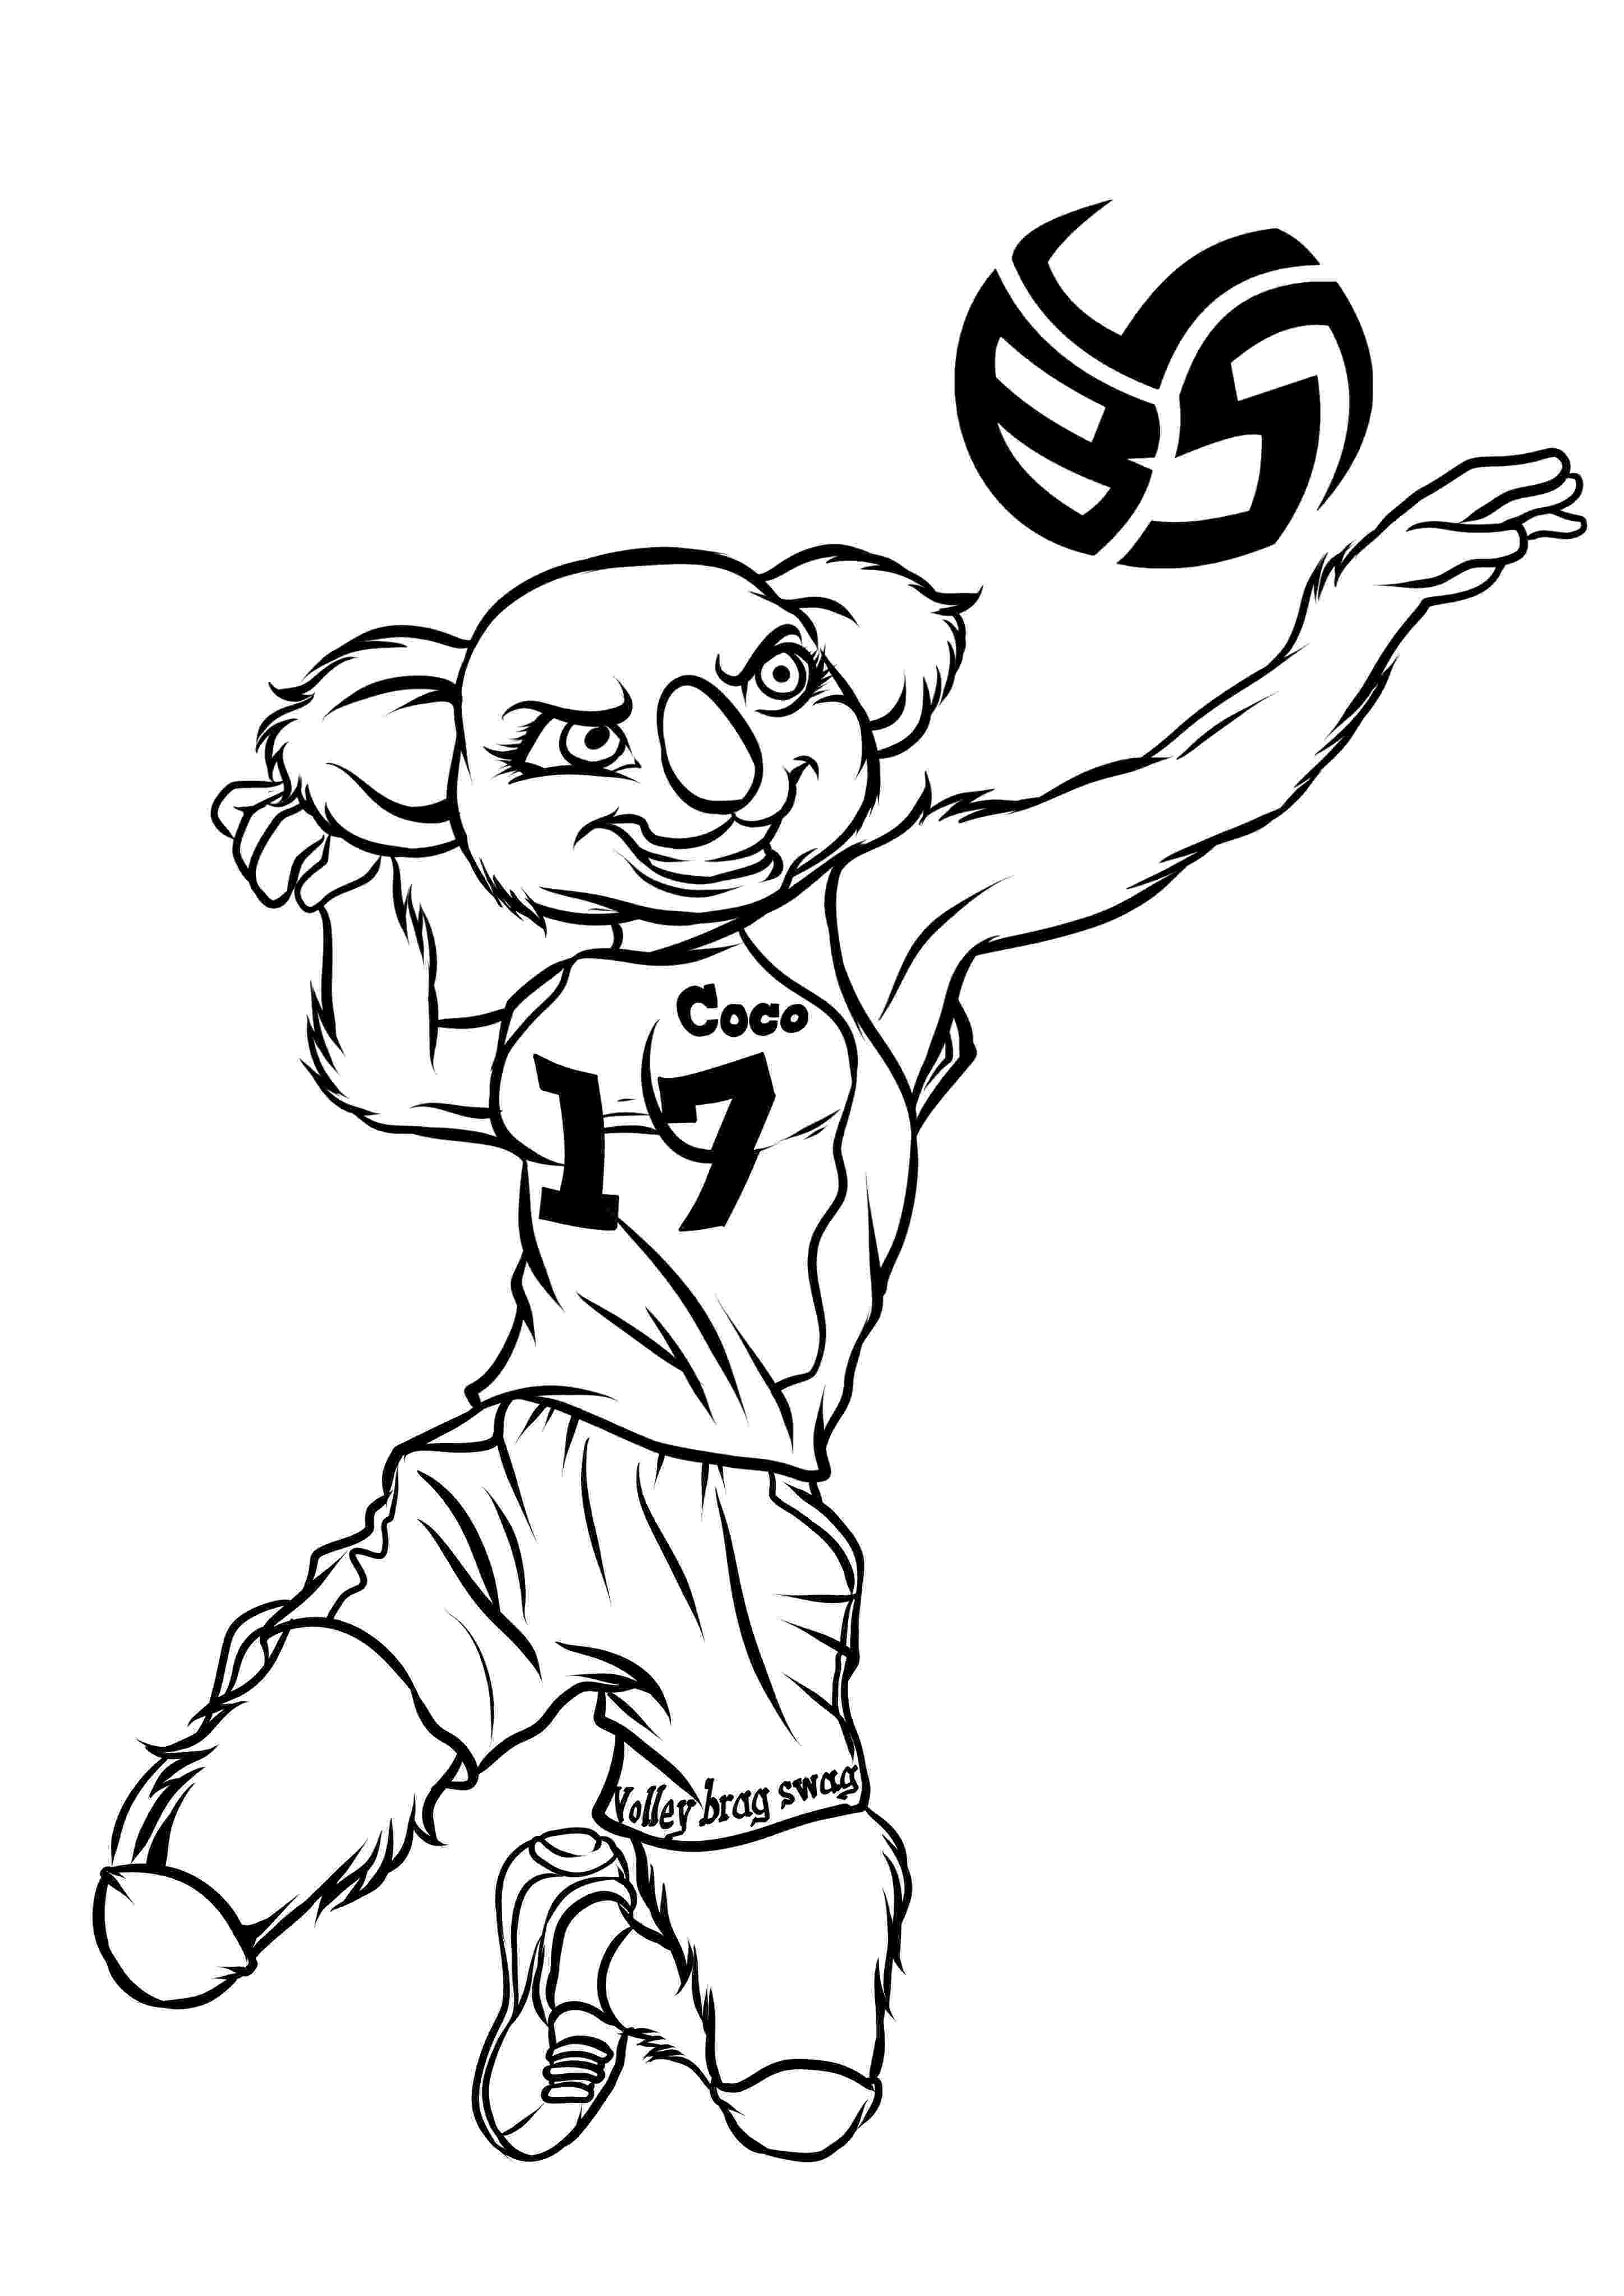 koala coloring pages koala coloring pages with volleybragswag opposite coco the coloring pages koala